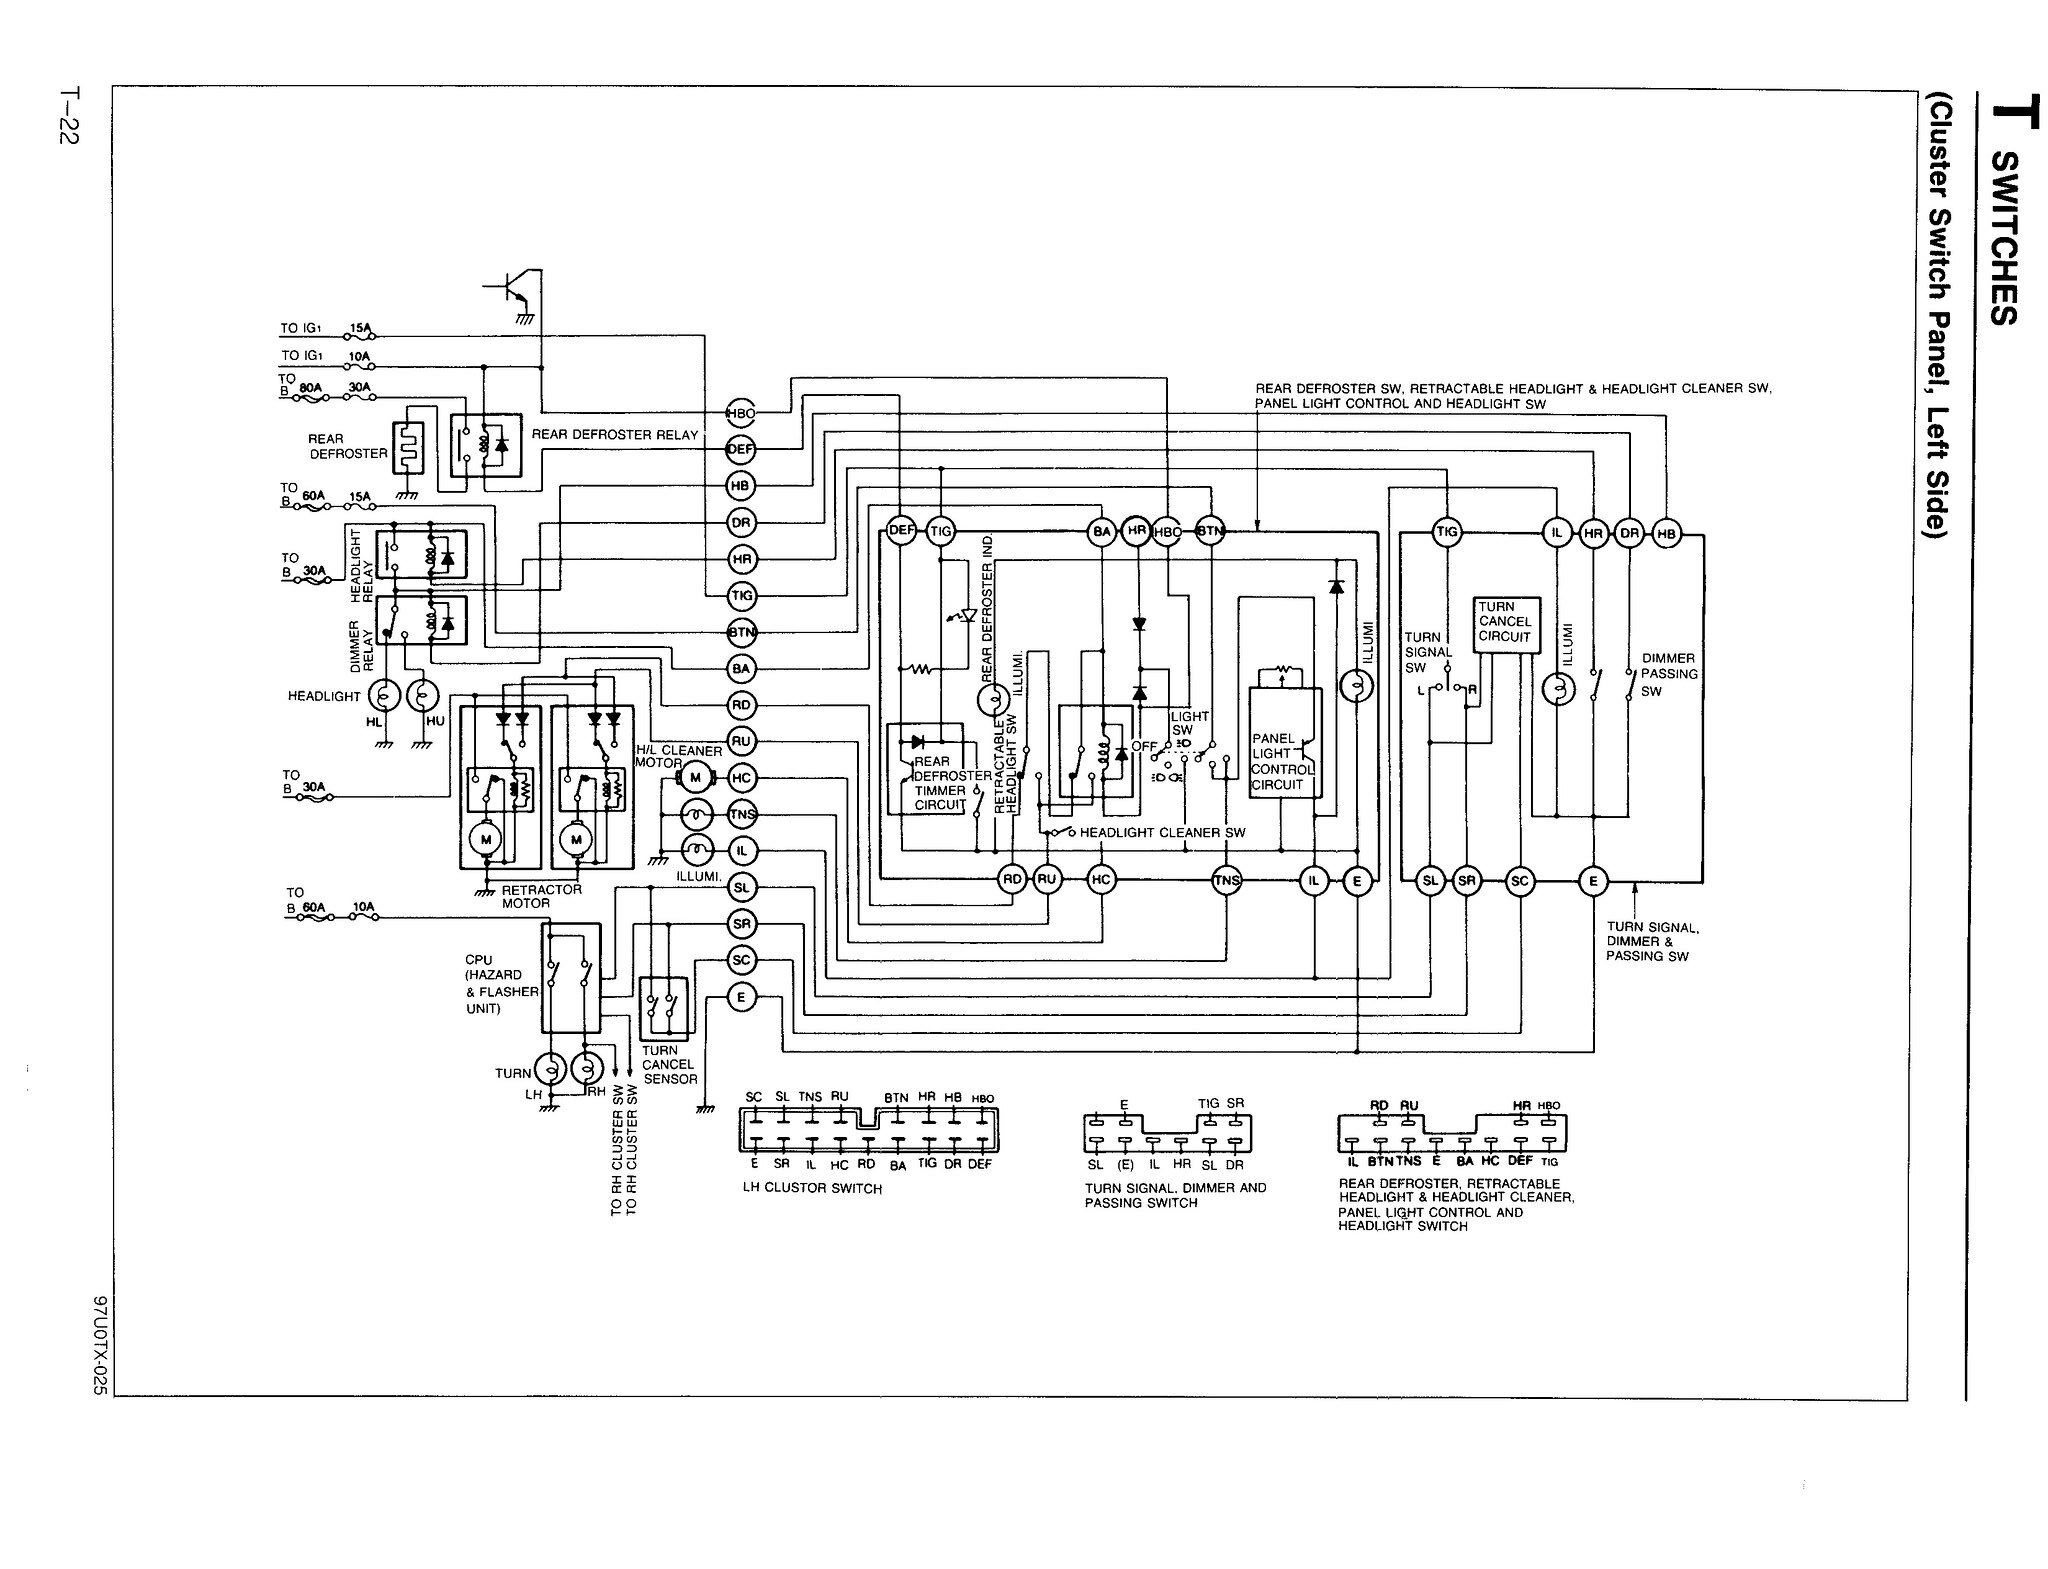 1976 mg midget wiring diagram free download wiring diagrahm for 1971 mg midget - hot porno 1971 mg midget wiring diagram